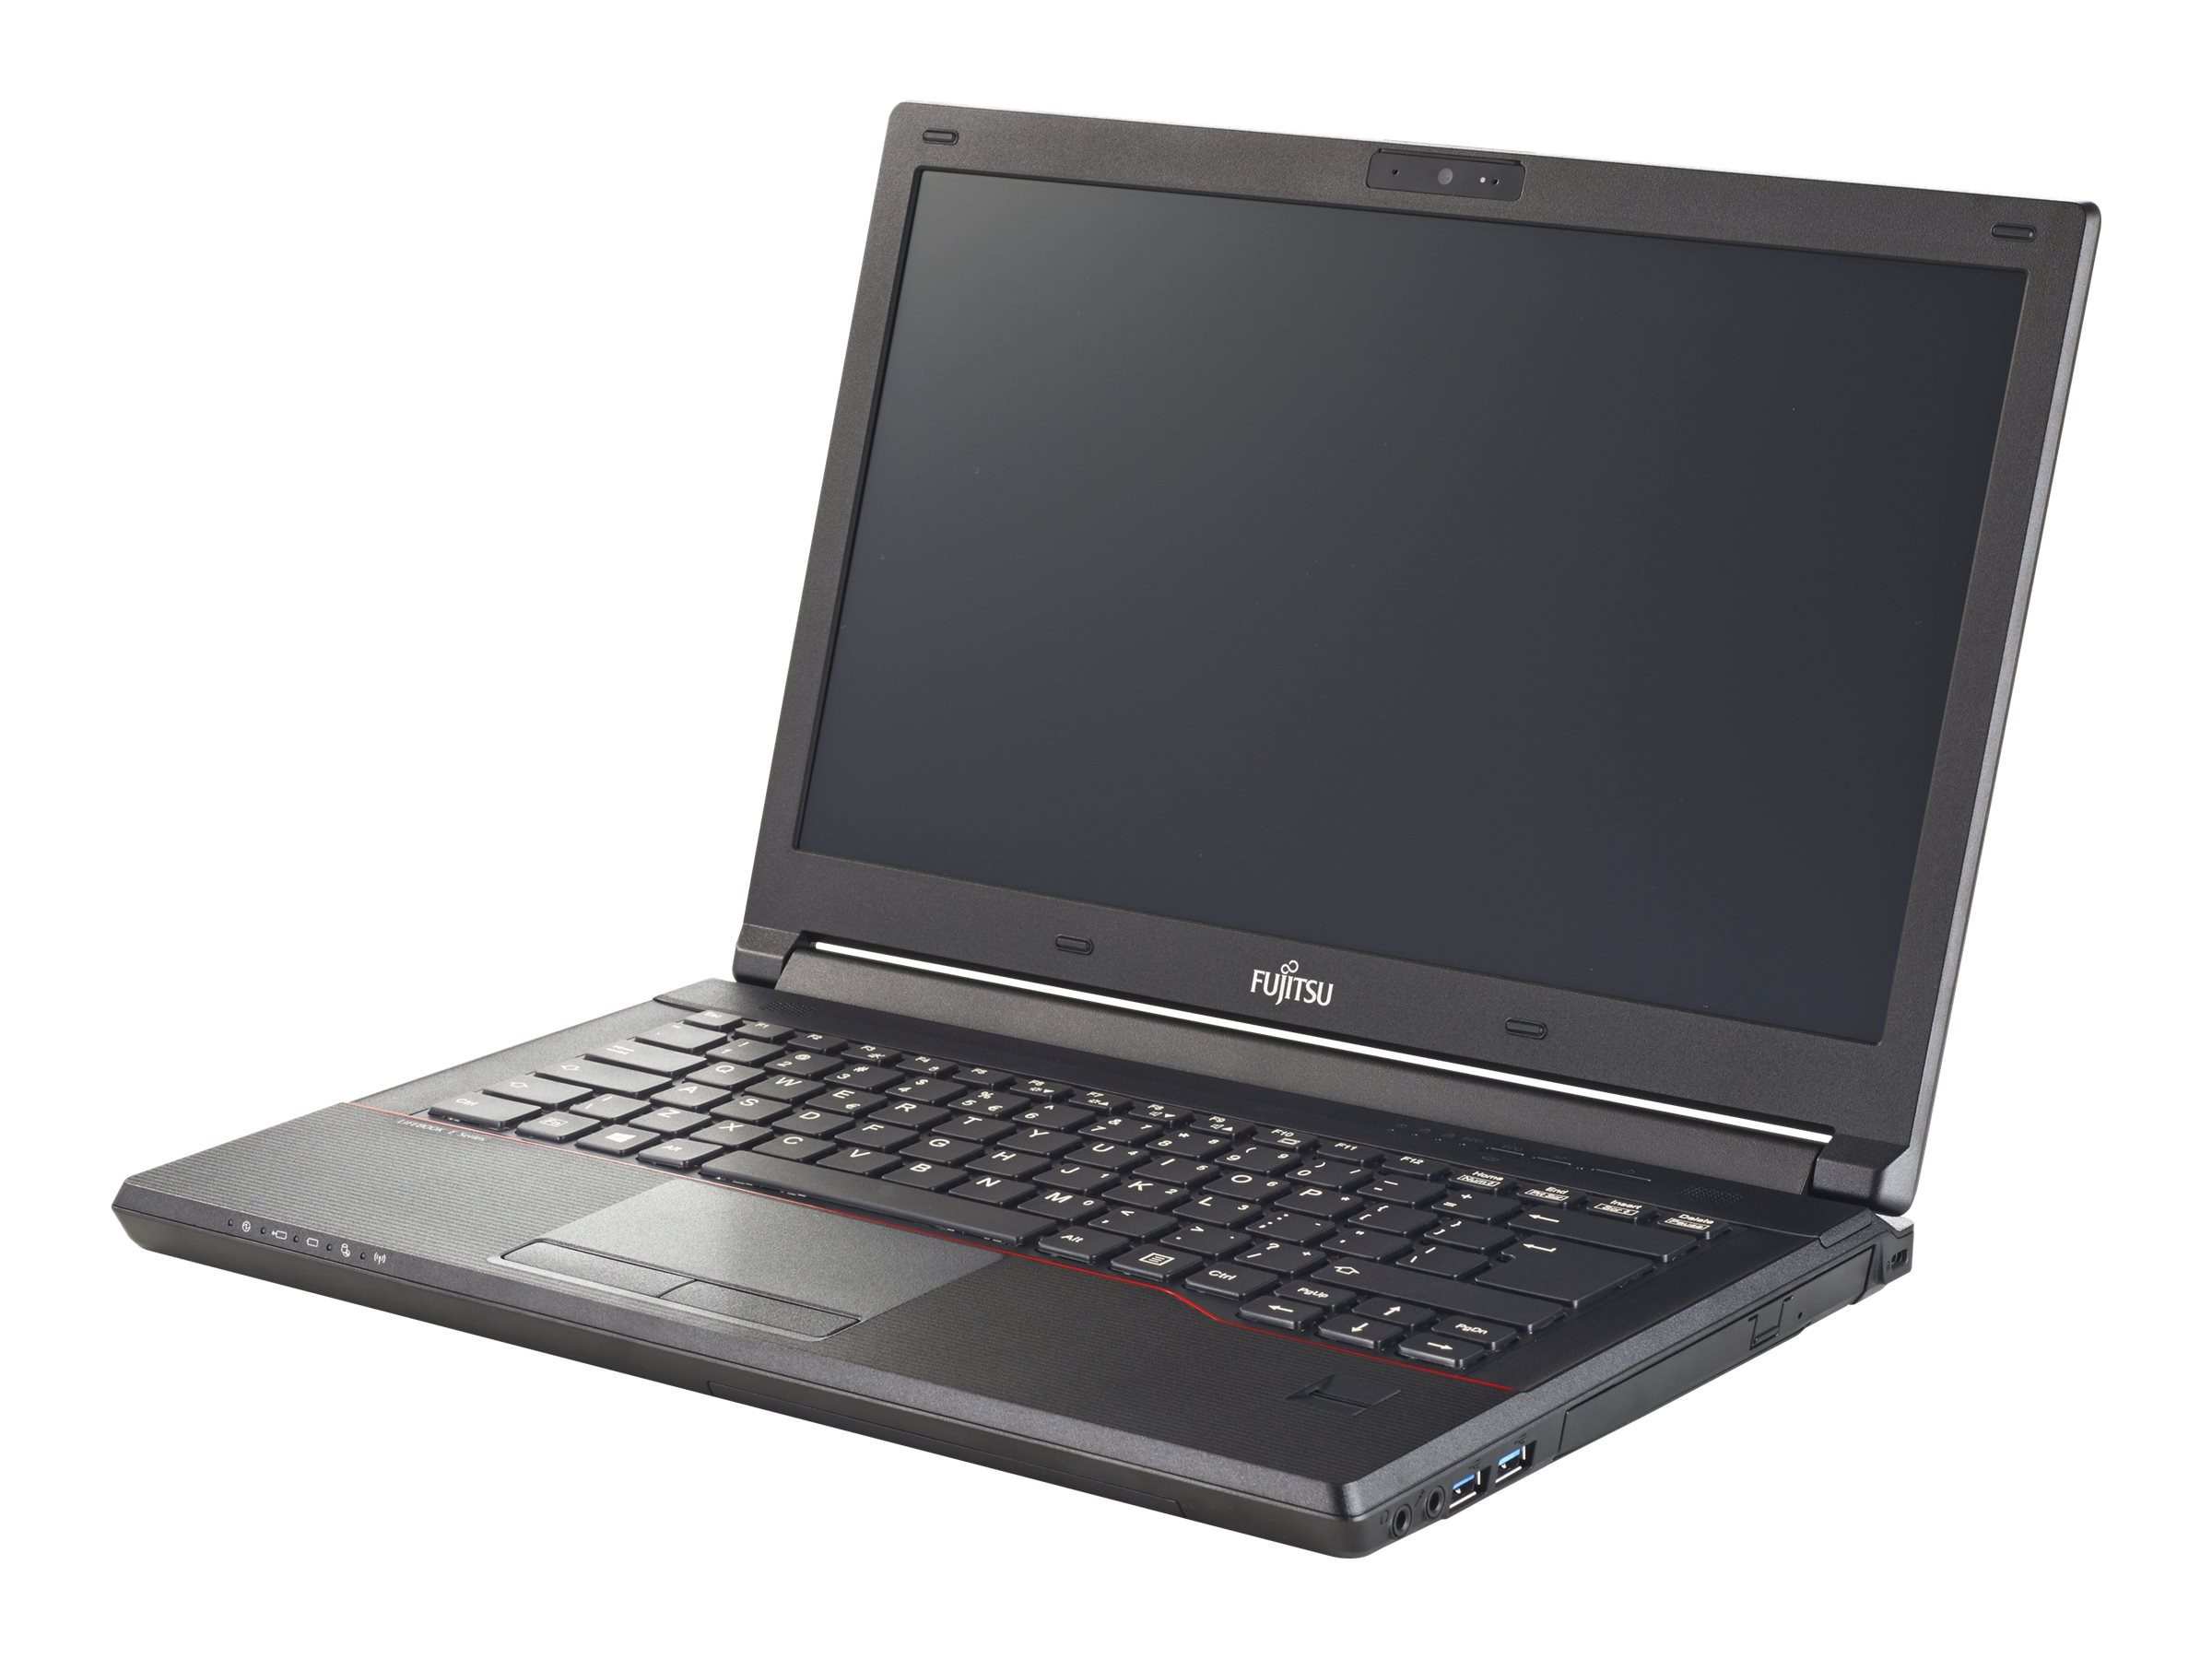 Fujitsu LifeBook E546 2.3GHz Core i5 14in display